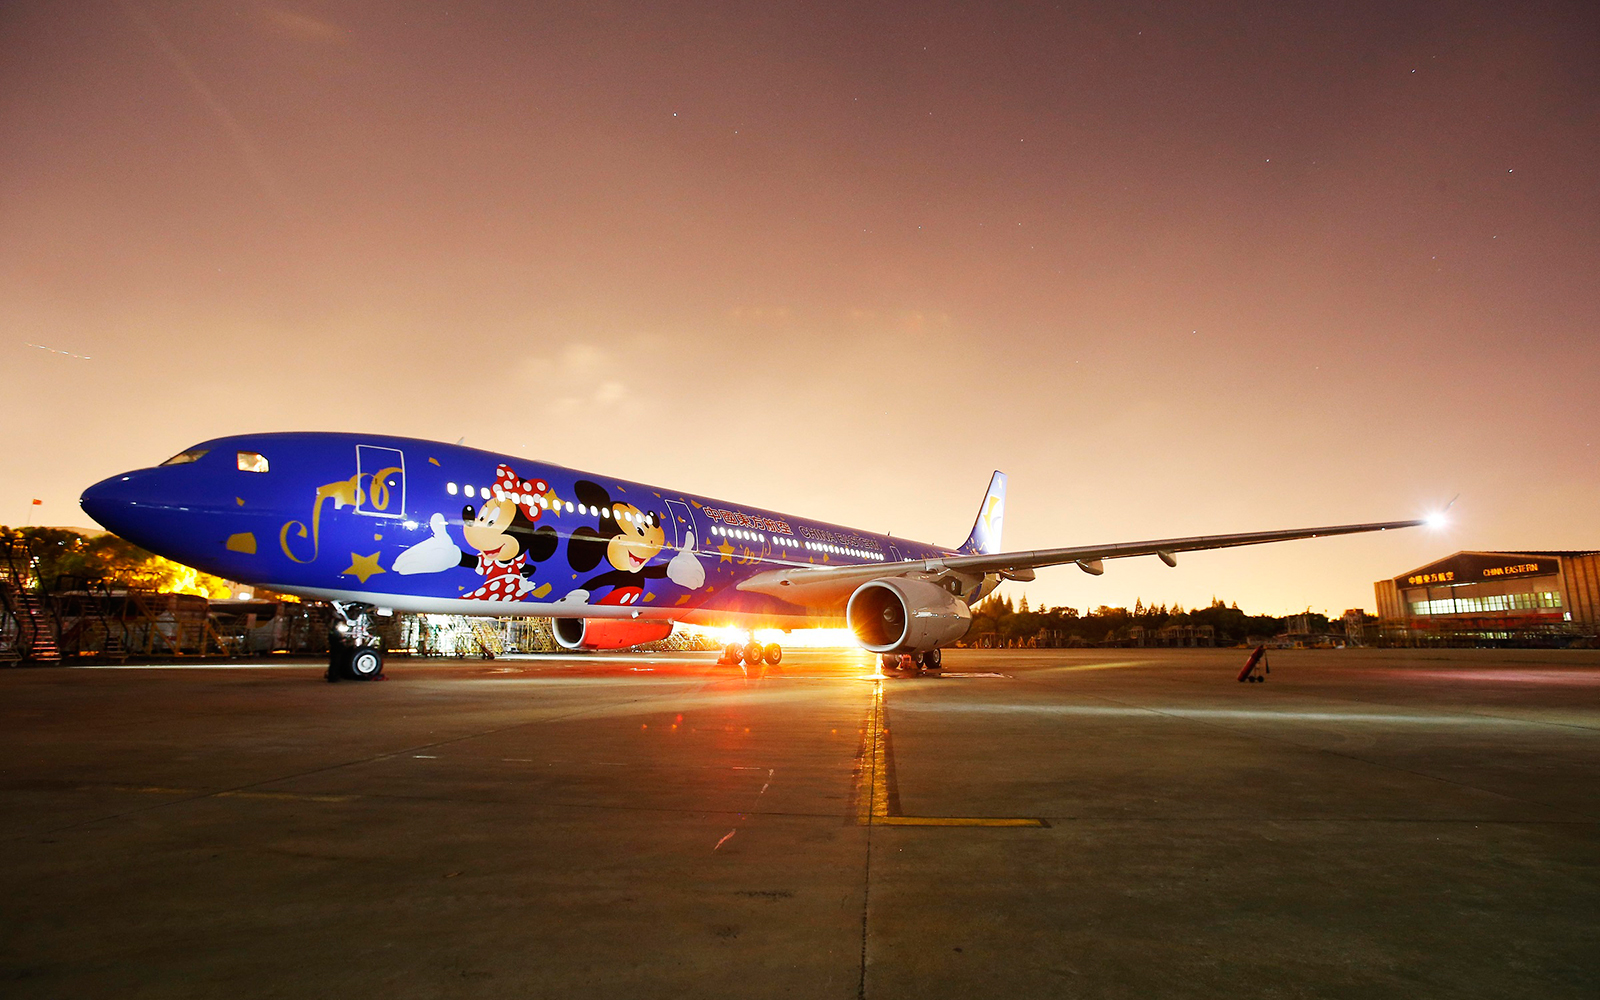 Shanghai Disney Resort airplane